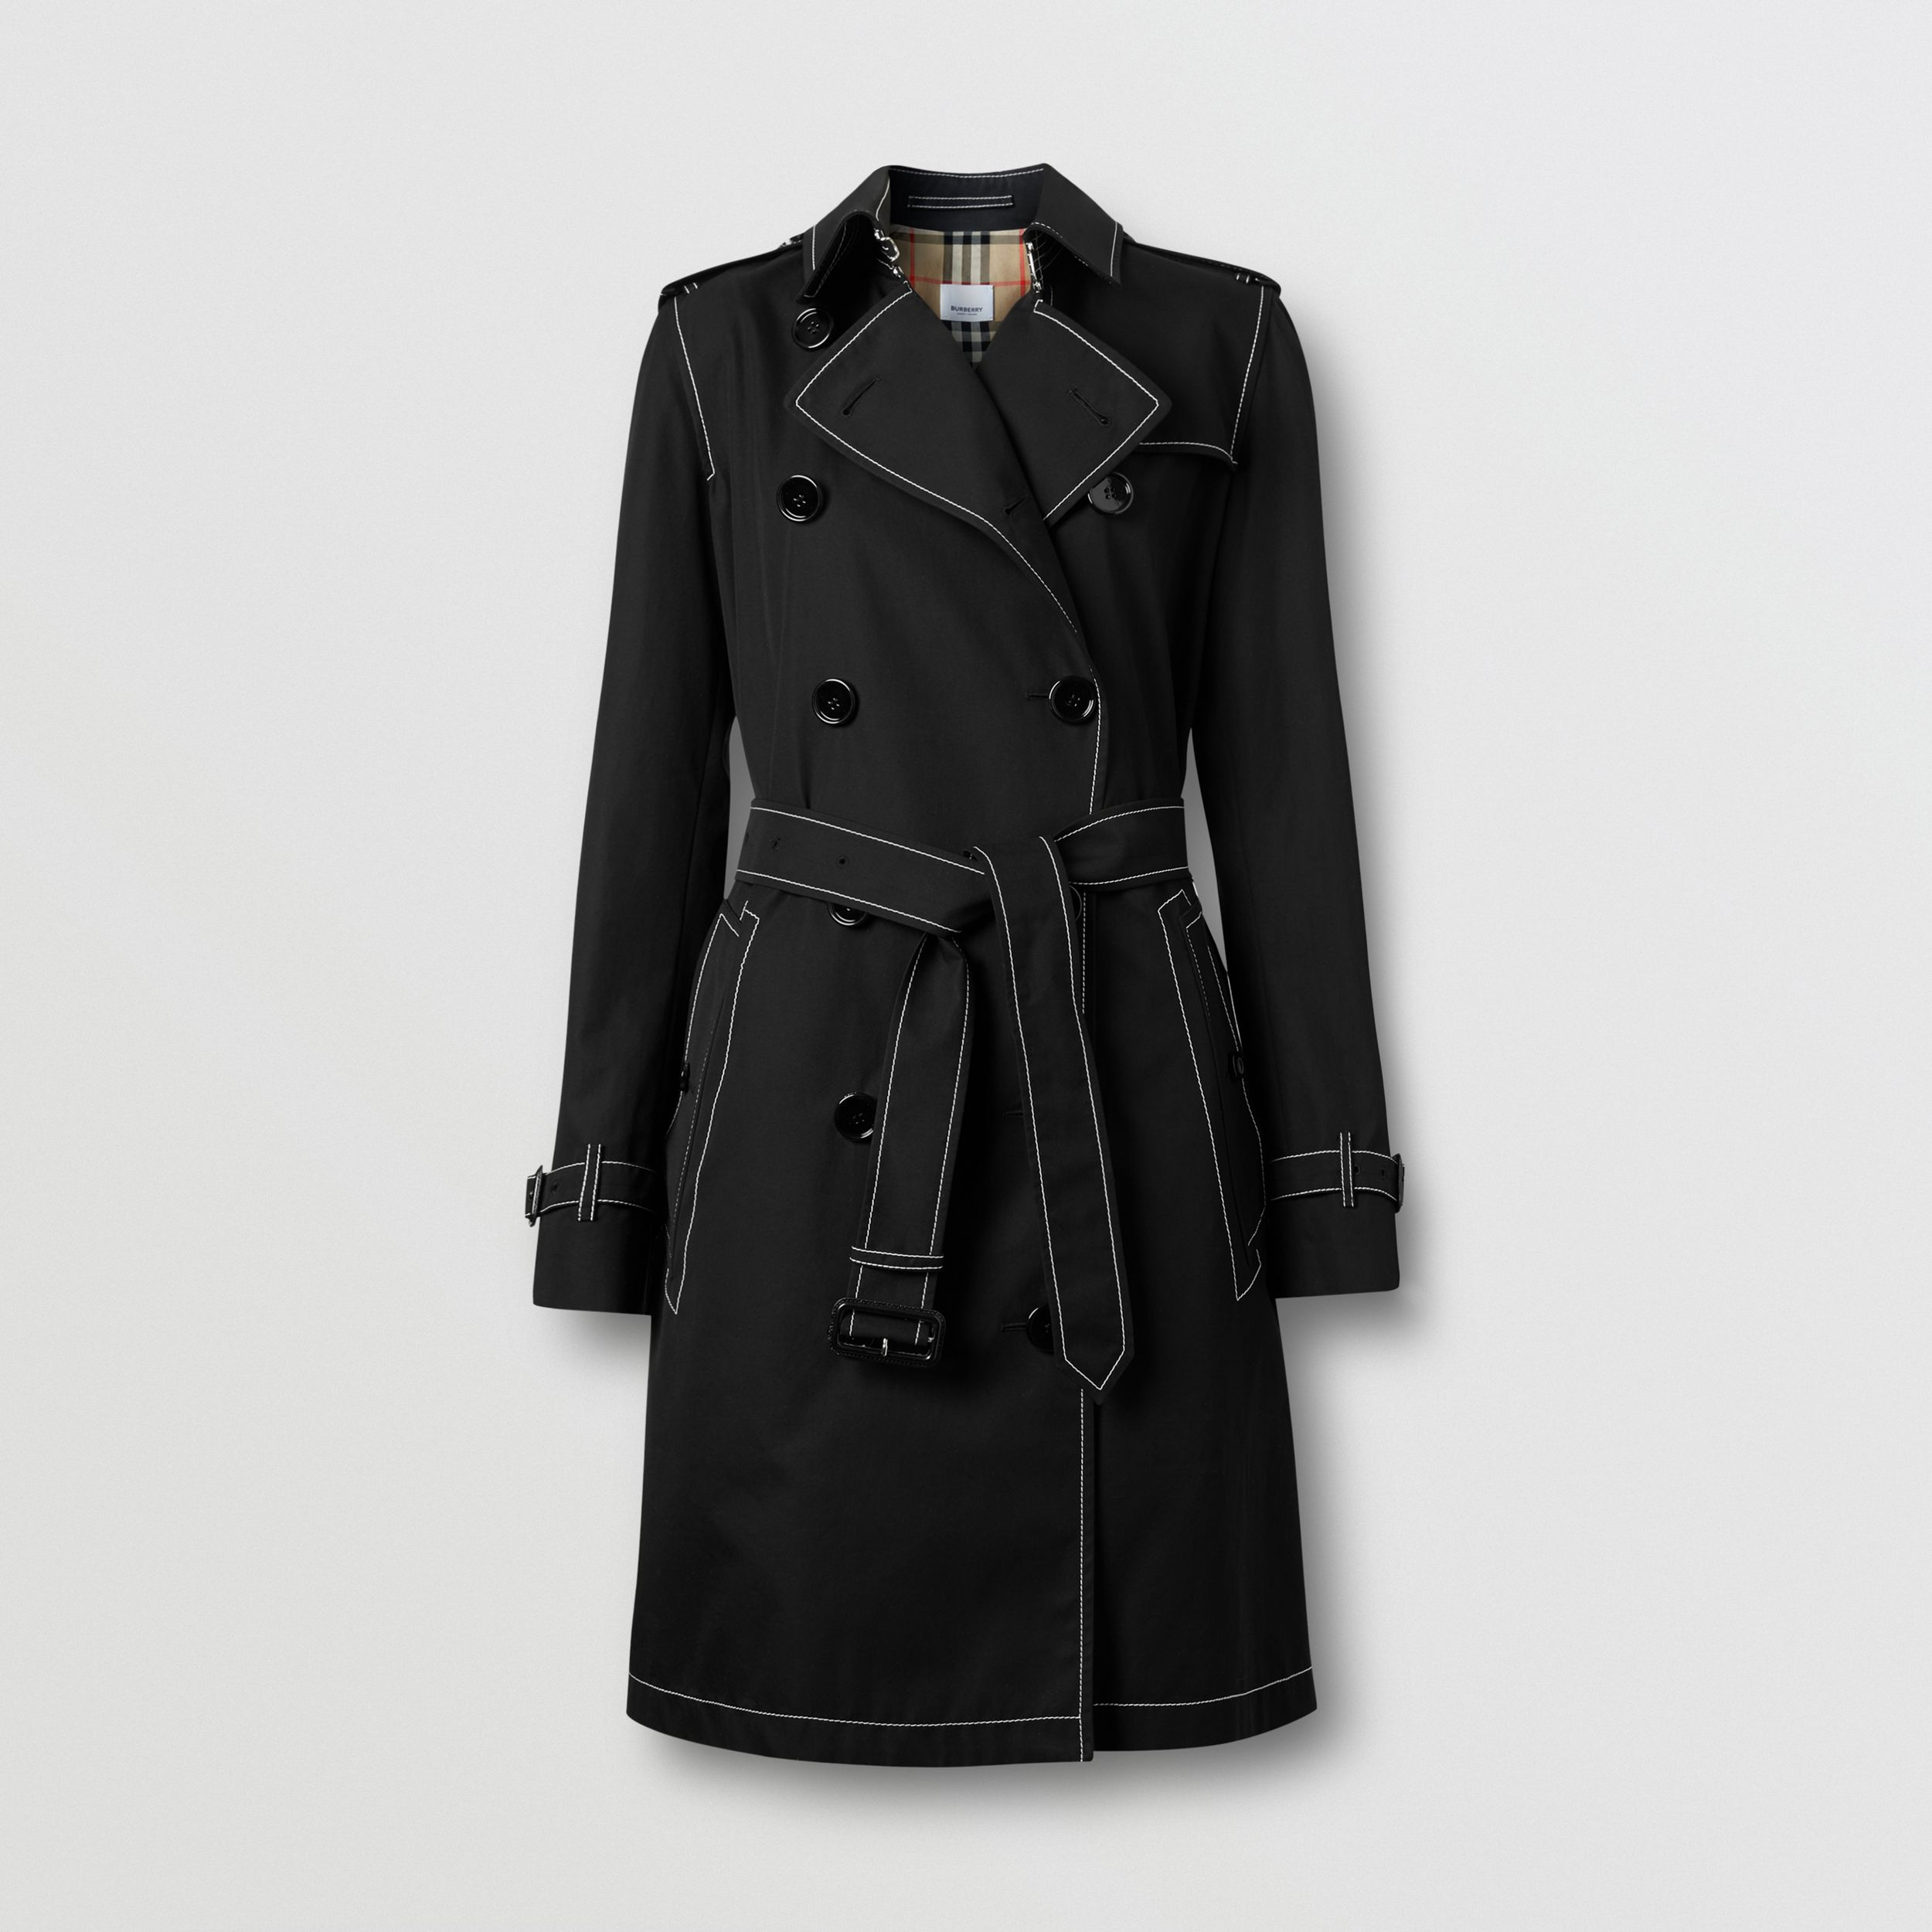 Topstitched Tropical Gabardine Trench Coat in Black - Women | Burberry - 4